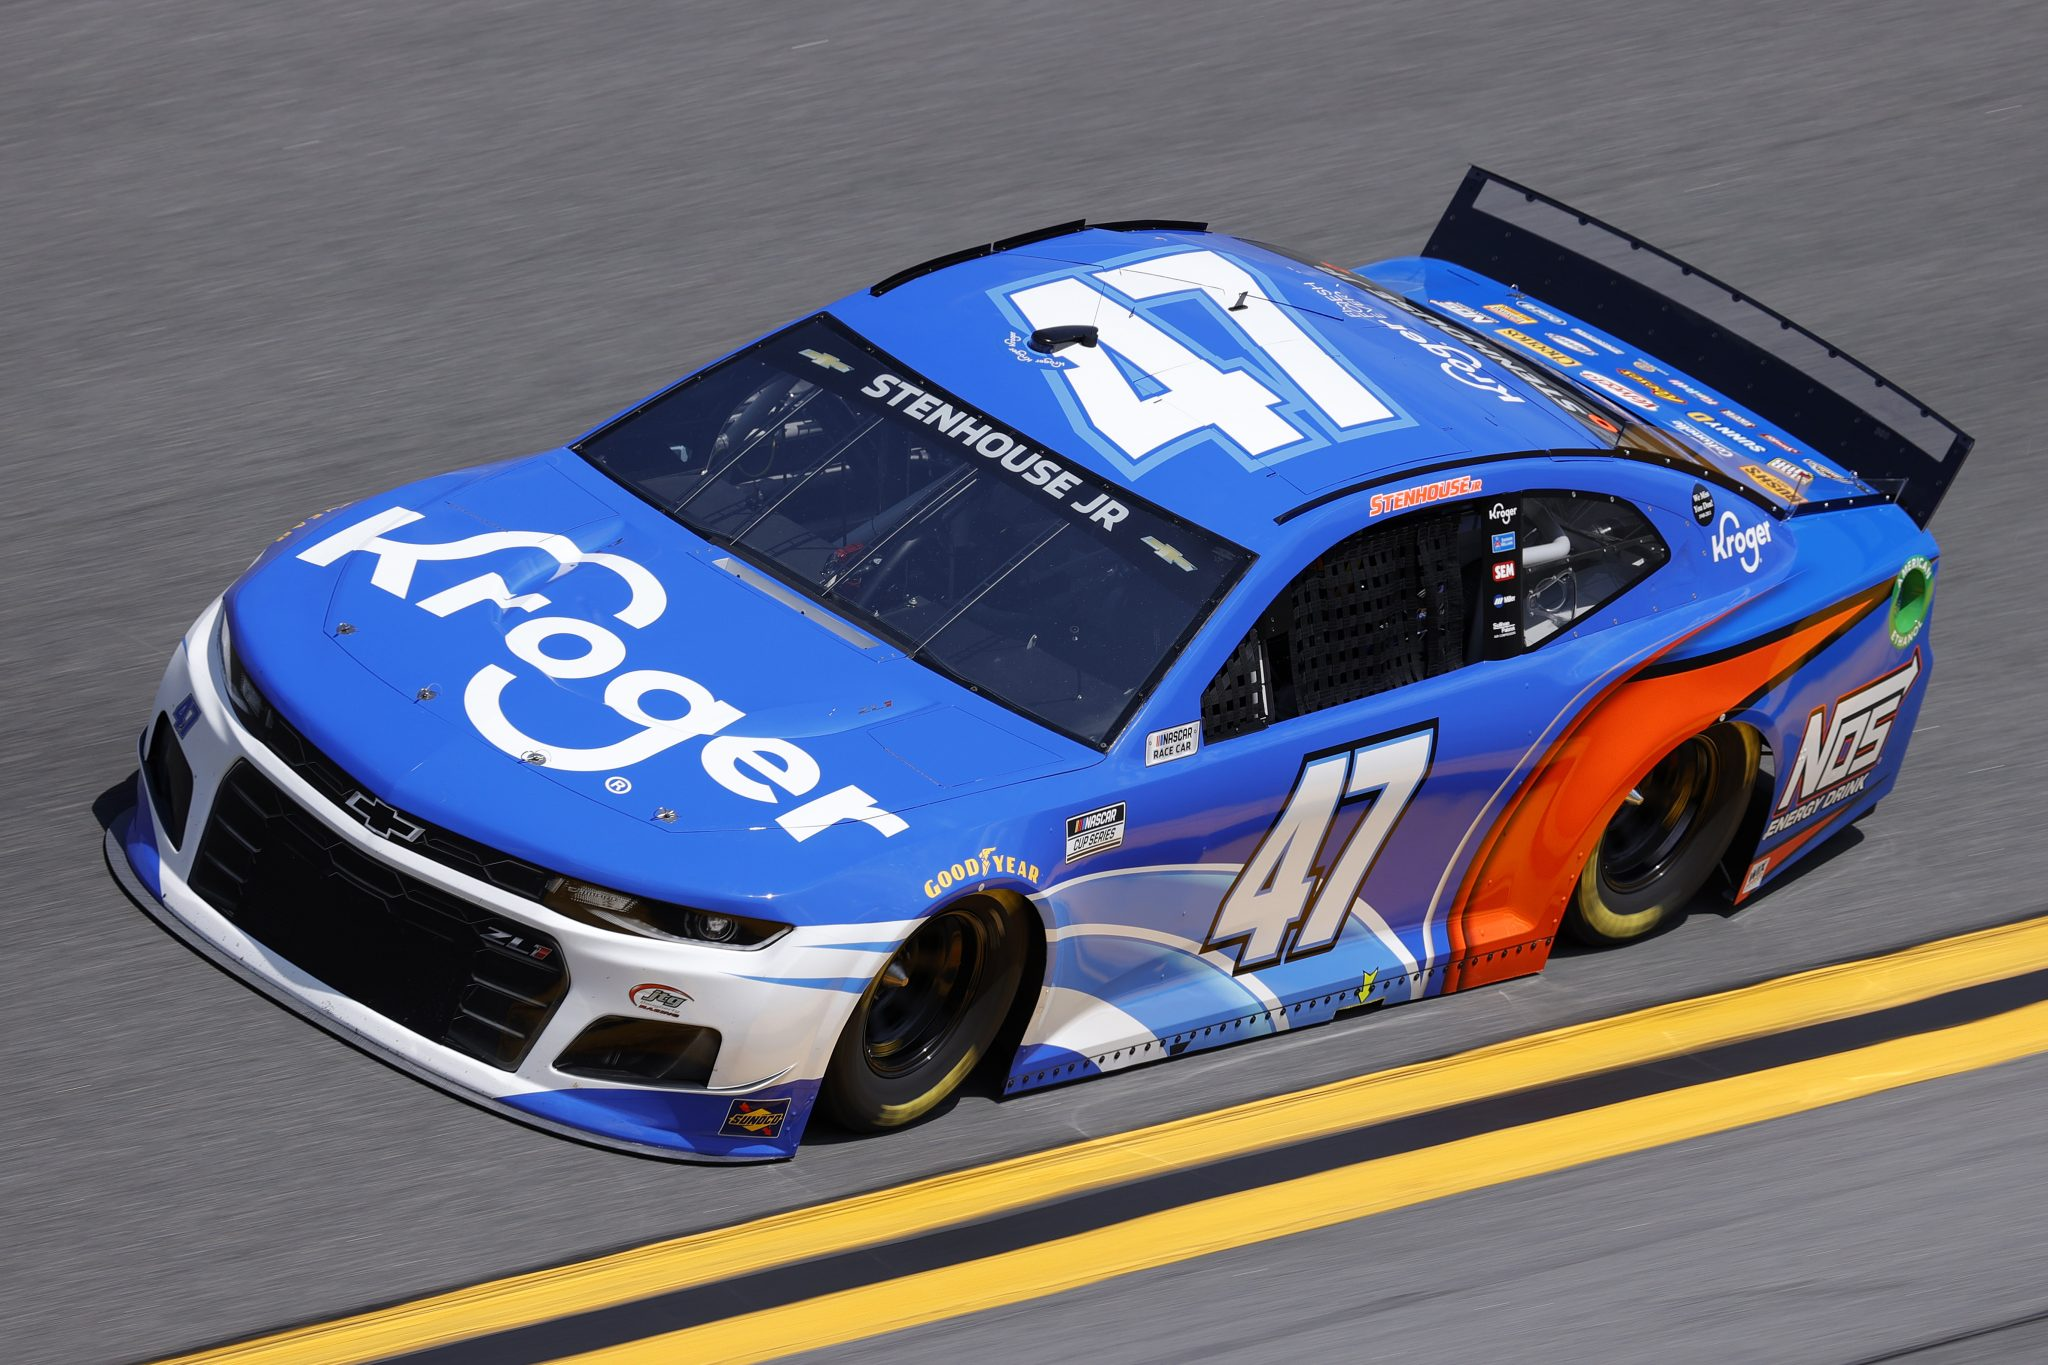 DAYTONA BEACH, FLORIDA - FEBRUARY 10: Ricky Stenhouse Jr., driver of the #47 Kroger/NOS Energy Drink Chevrolet, drives during practice for the NASCAR Cup Series 63rd Annual Daytona 500 at Daytona International Speedway on February 10, 2021 in Daytona Beach, Florida. (Photo by Jared C. Tilton/Getty Images) | Getty Images